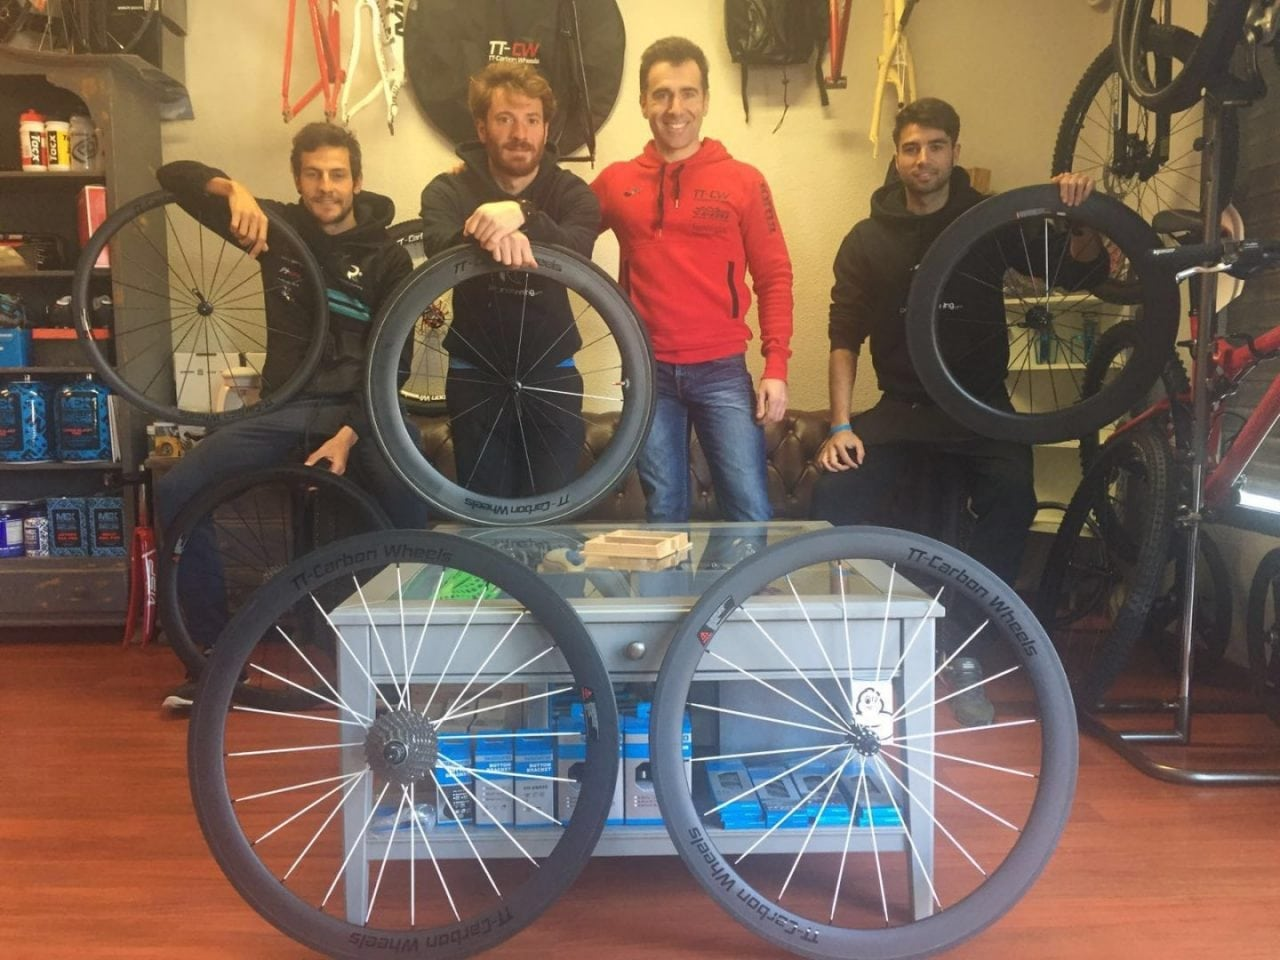 TT-CARBON WHEELS EMPIEZA A RODAR CON PERSONAL RUNNING